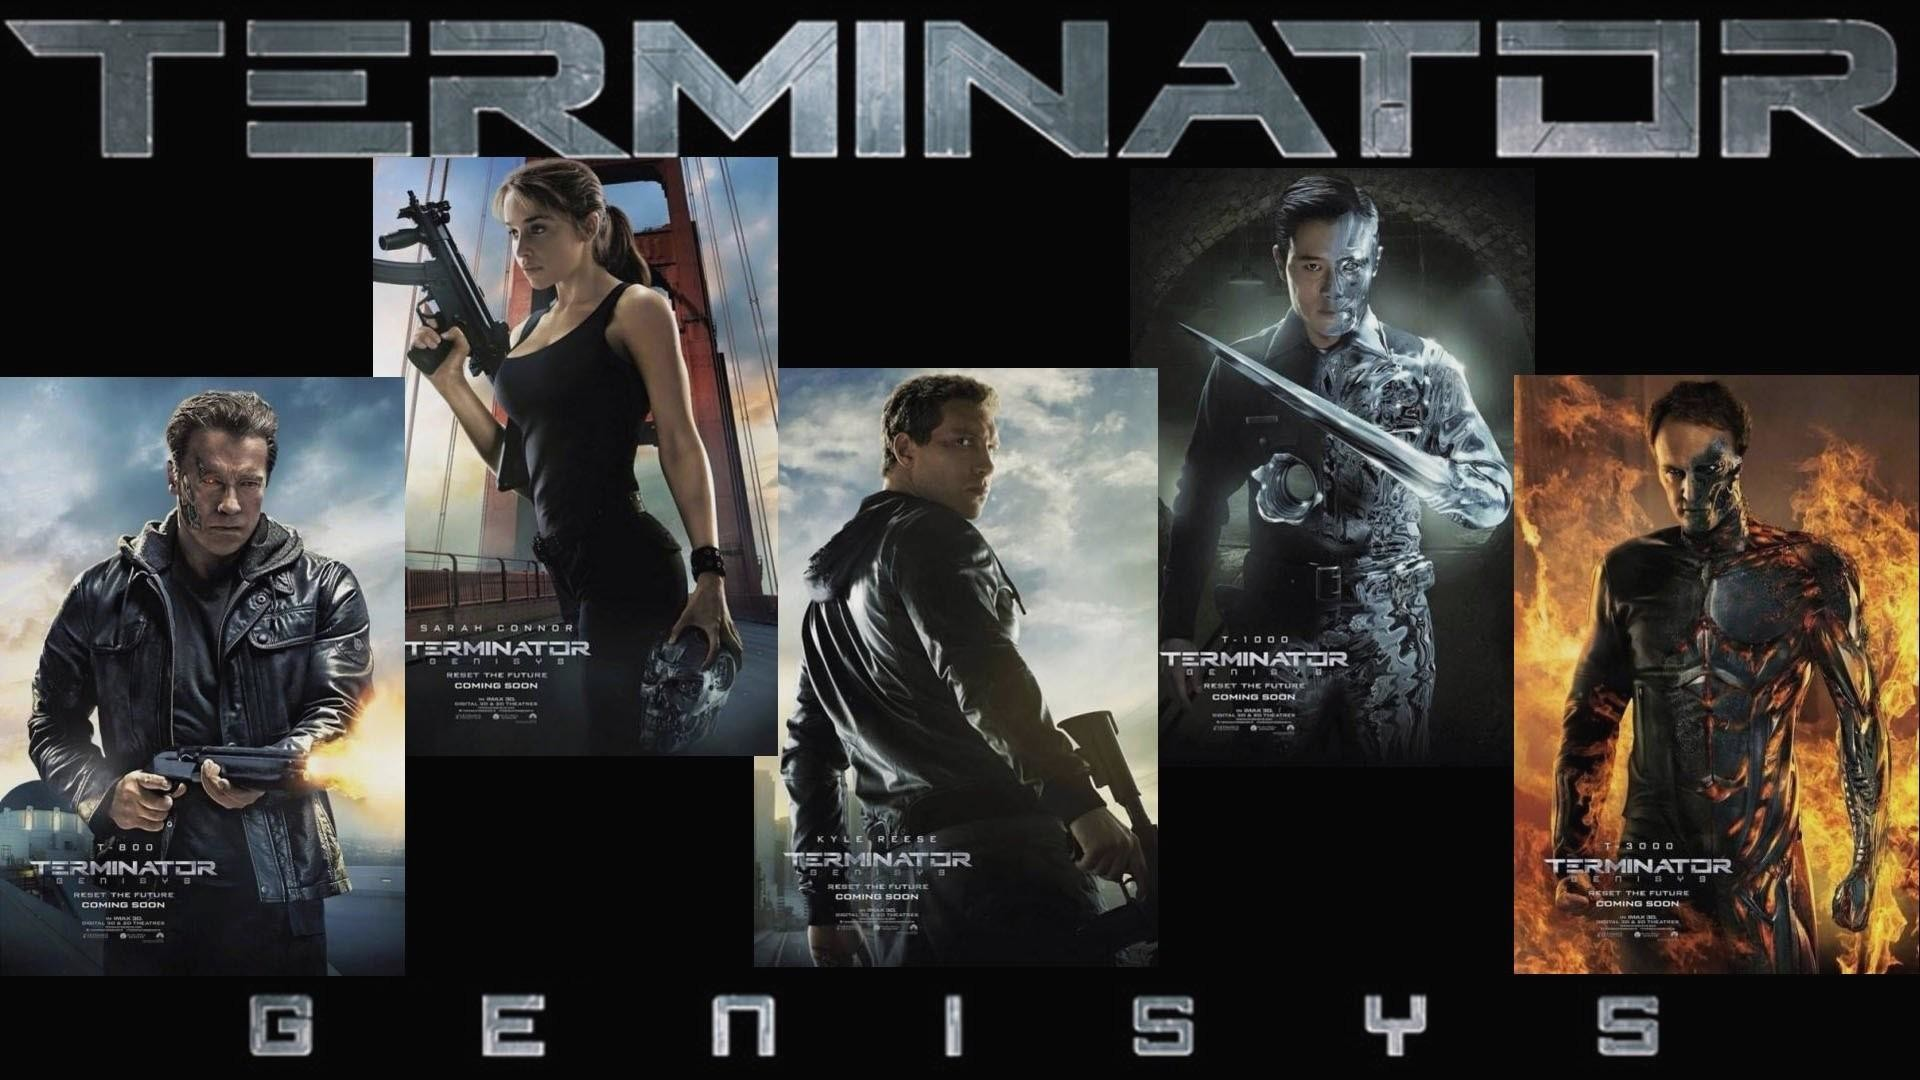 1920x1080 Terminator Genisys wallpapers for desktop